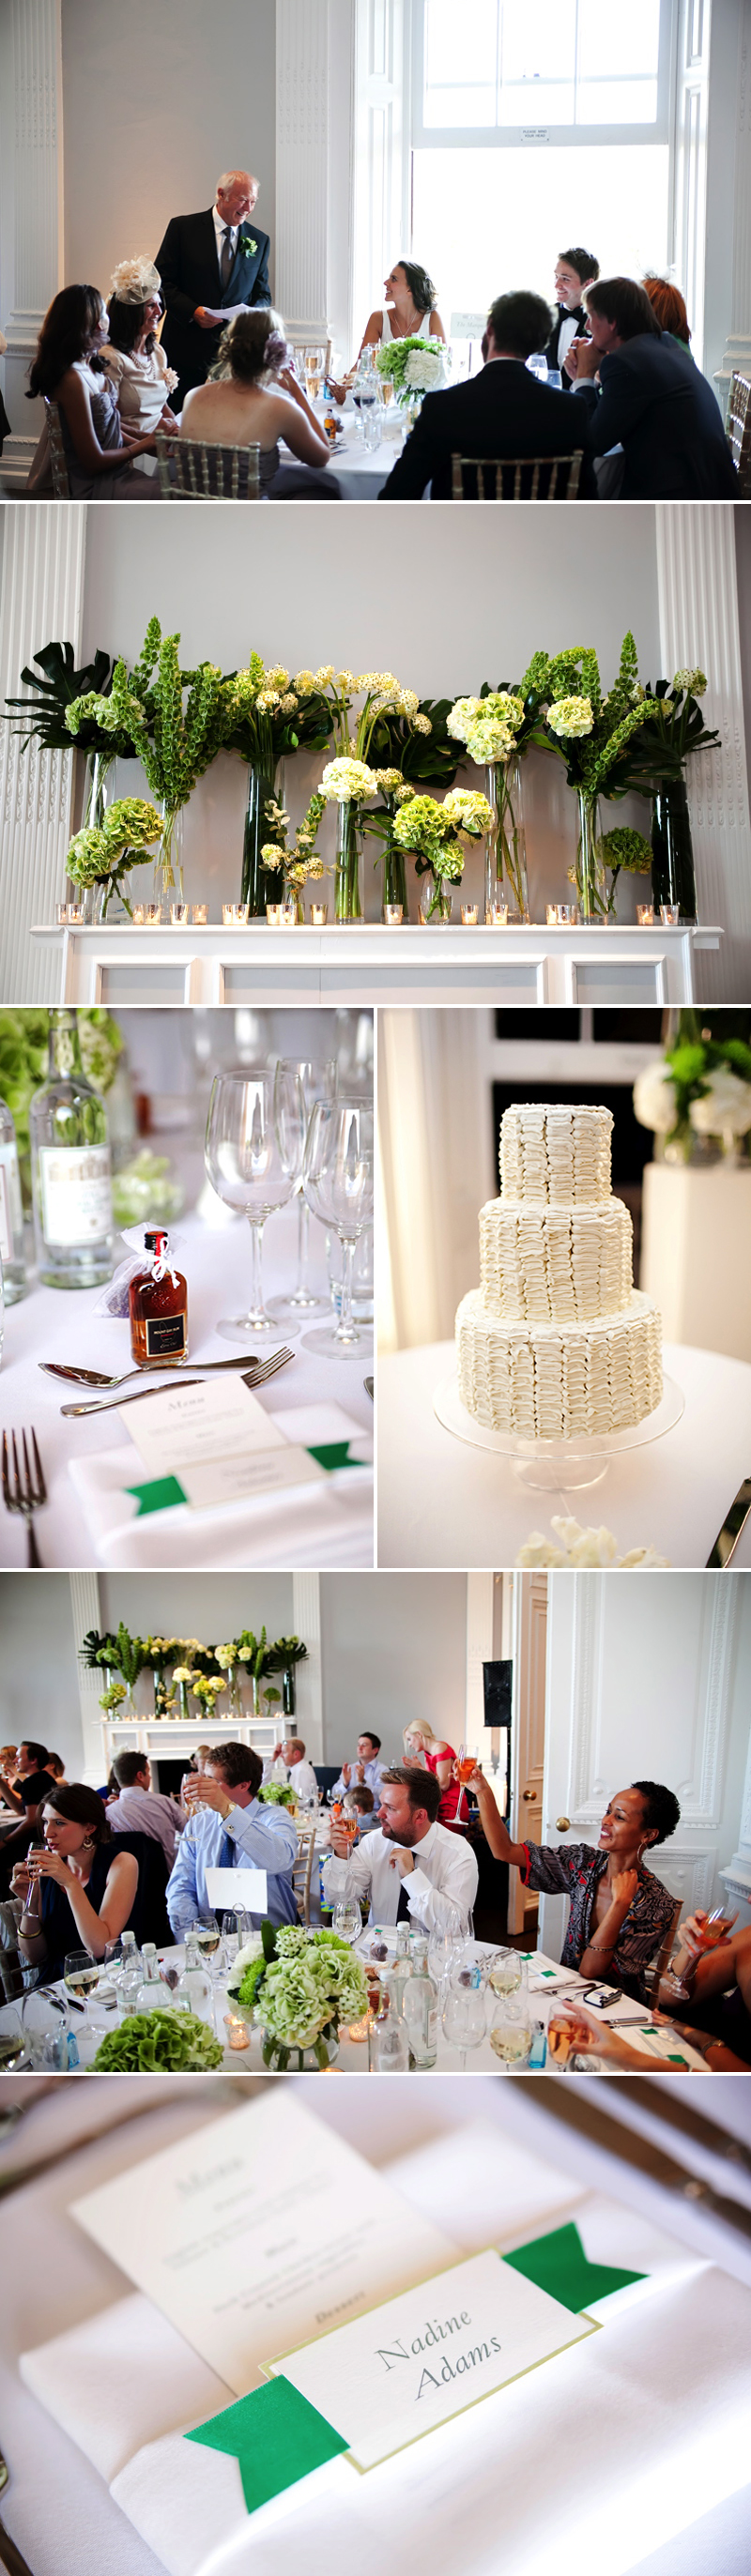 wedding-venues-in-london-institute-of-contemporary-arts-elegant-modern-wedding-006